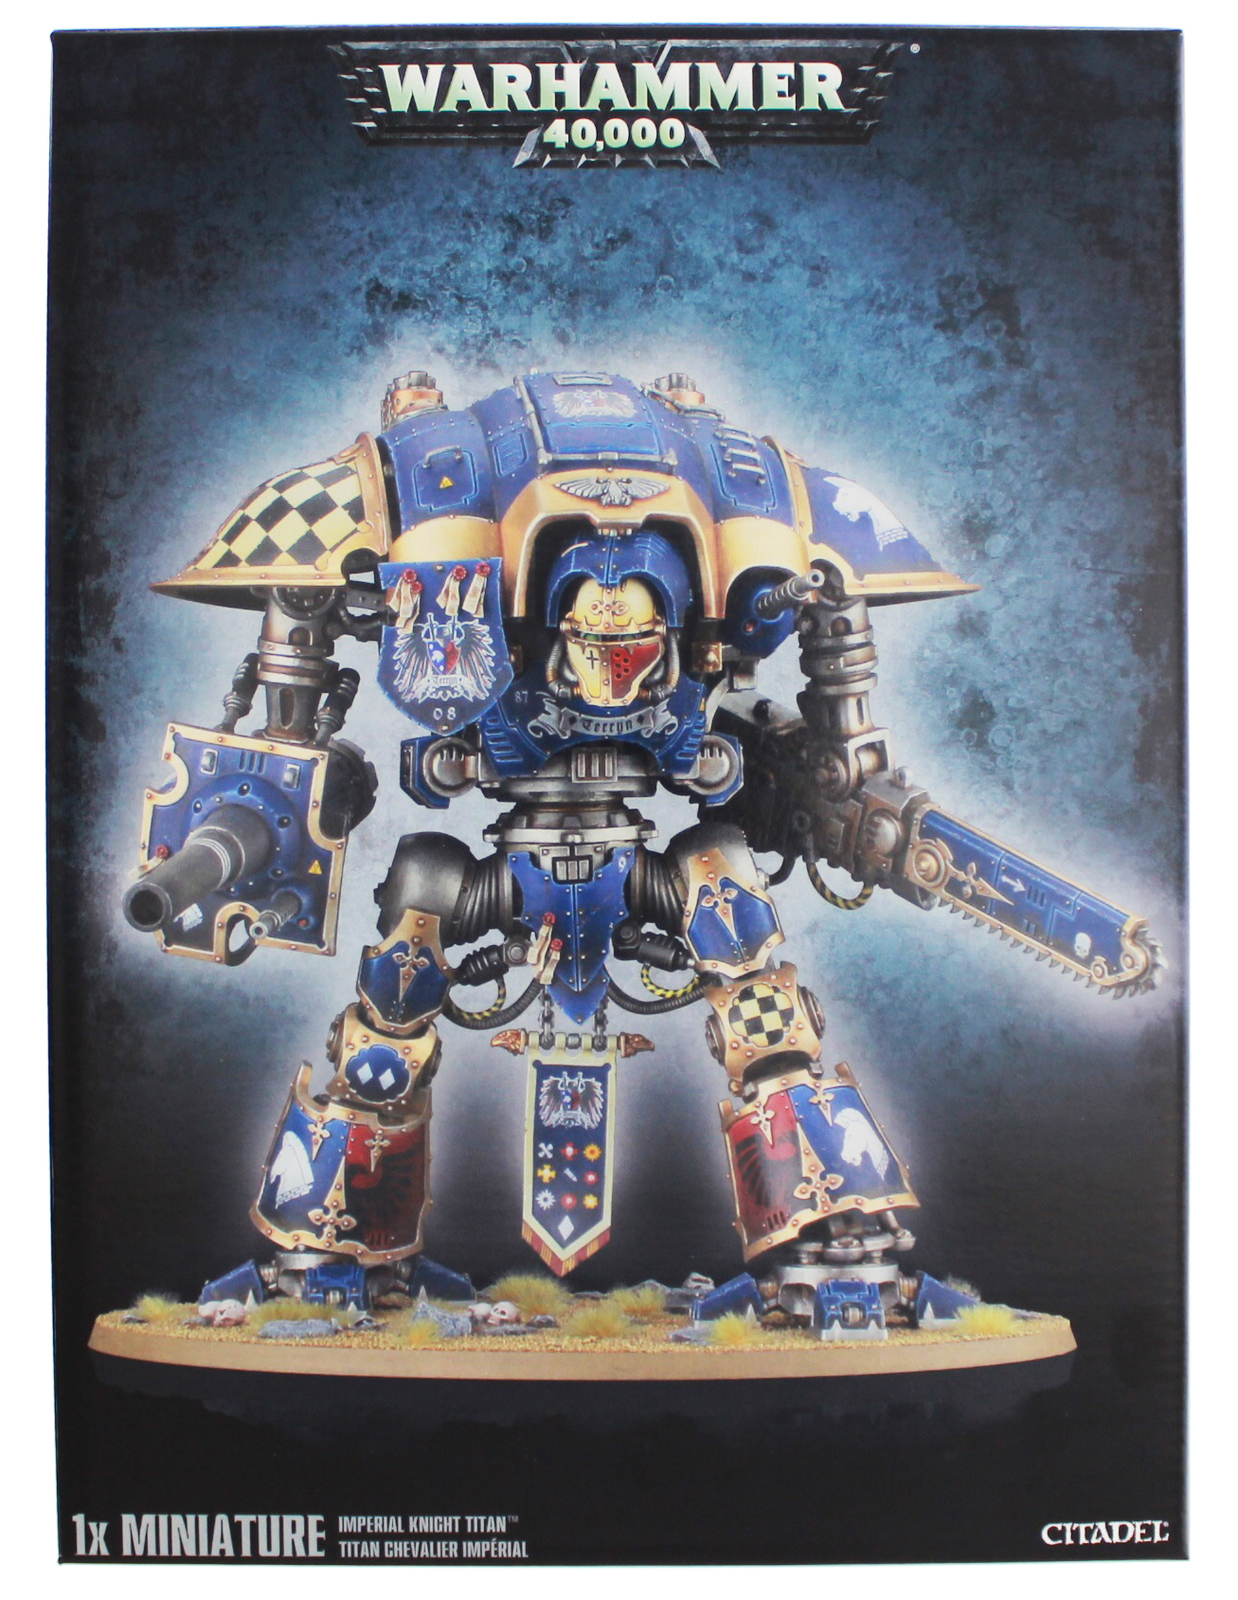 Warhammer 40,000 Imperial Knight image